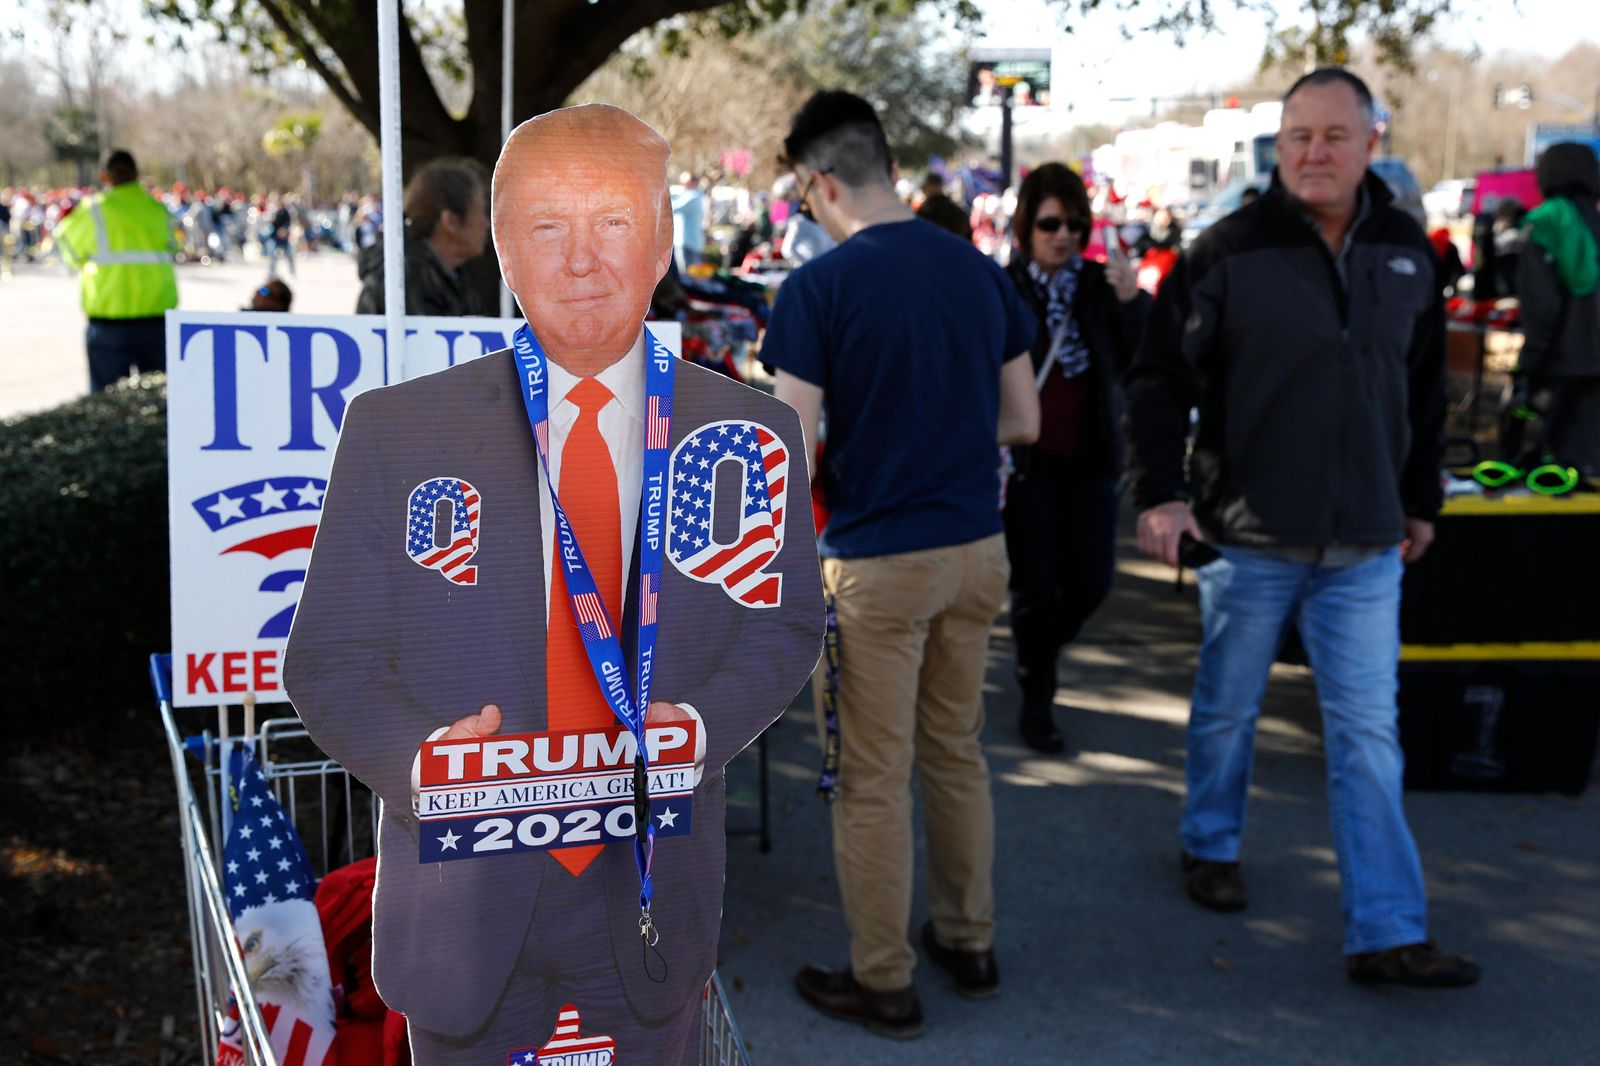 Attendees gather outside a campaign rally for President Donald Trump, Friday, Feb. 28, 2020, in North Charleston, S.C. (AP Photo/Patrick Semansky)